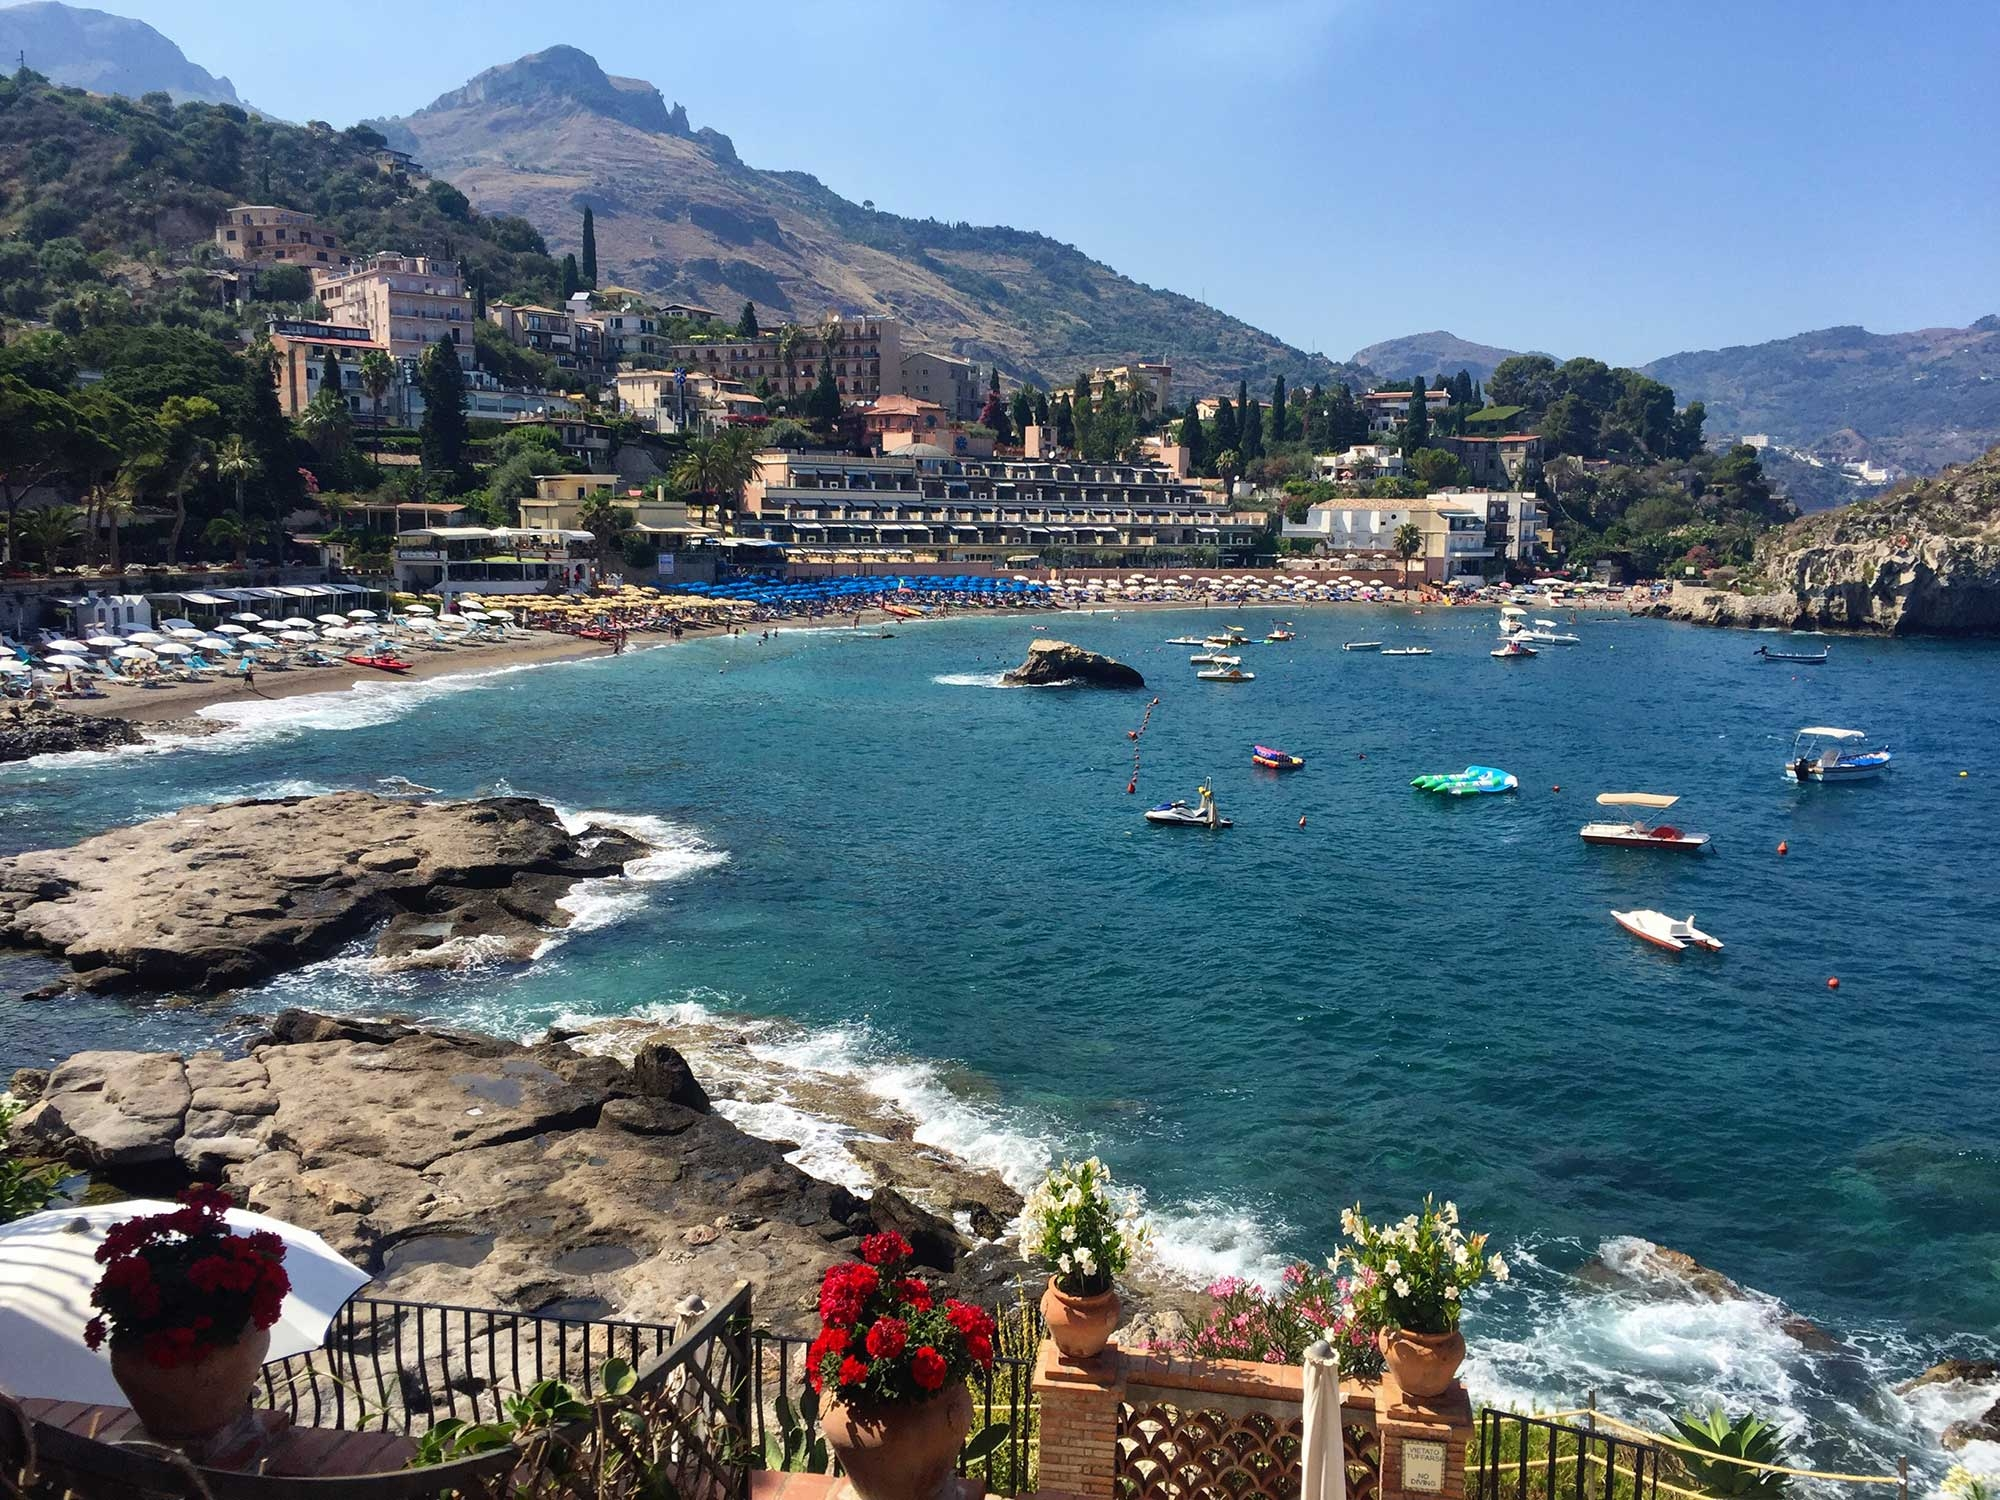 Large mountains surround the Taormina coast which is lined with sun loungers and beach umbrellas